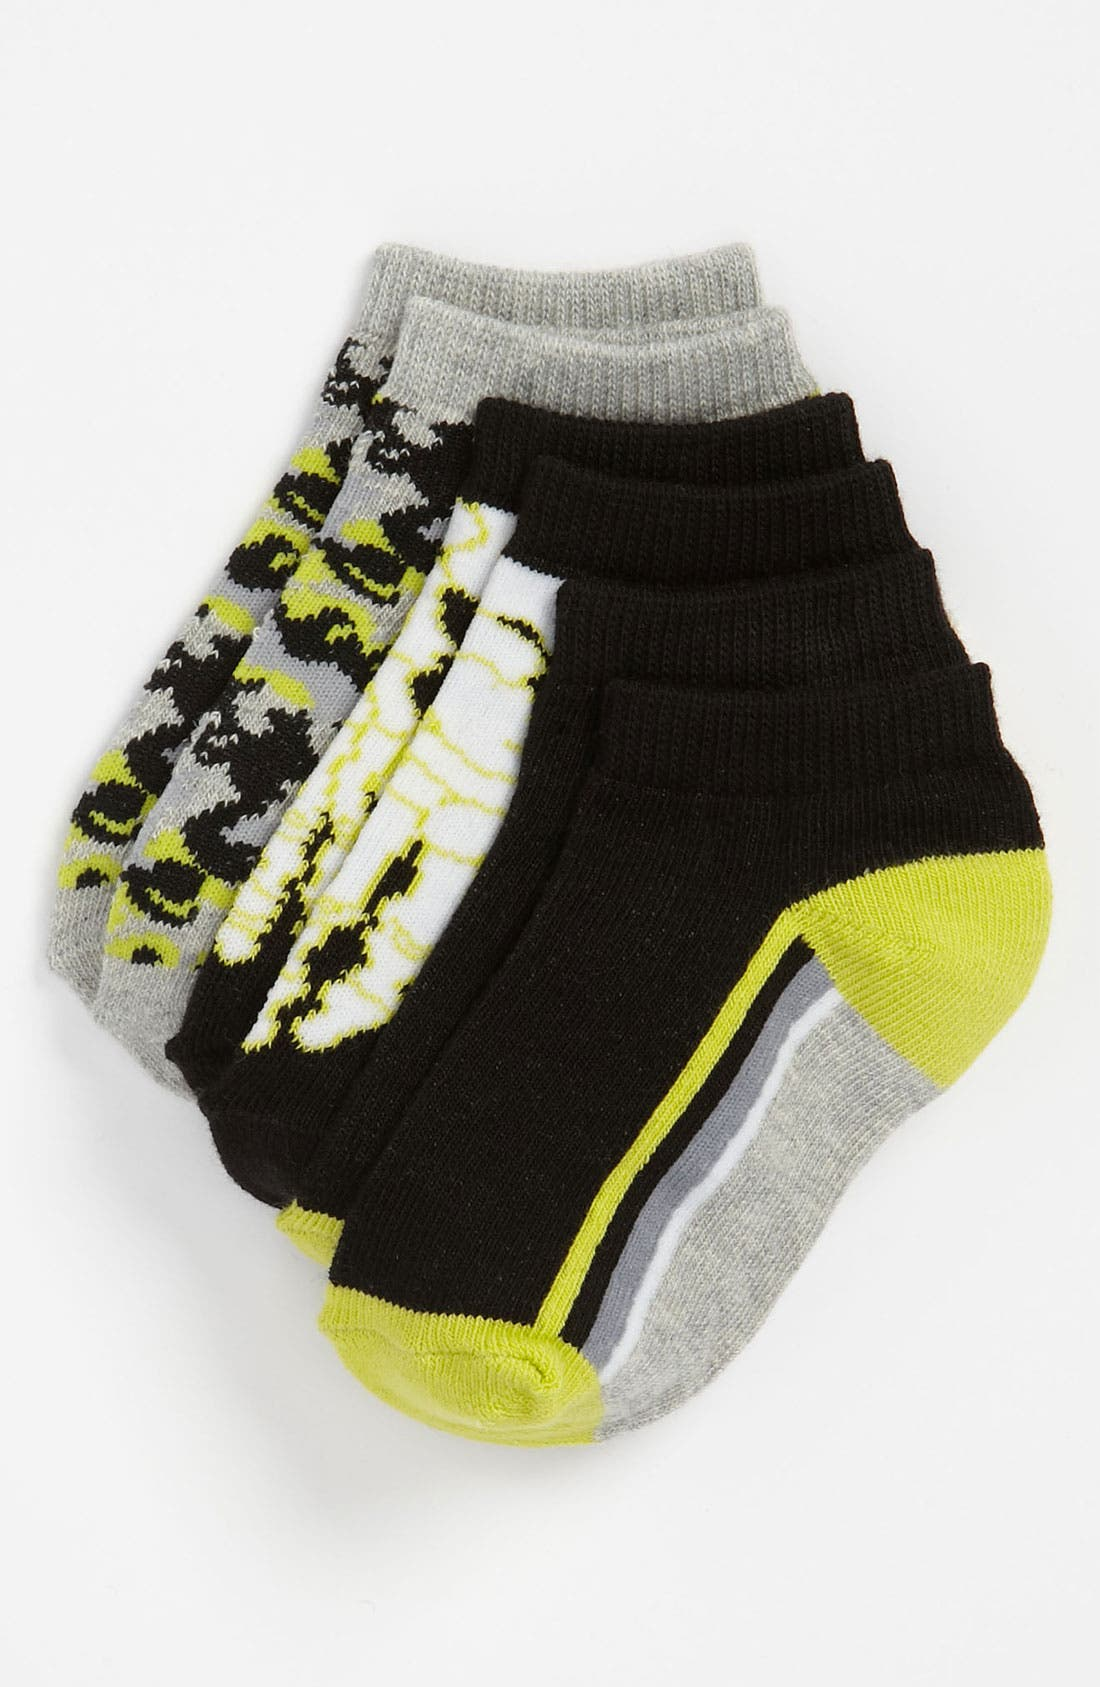 Main Image - Nordstrom 'Crossbones' Socks (3-Pack) (Toddler, Little Boys & Big Boys)